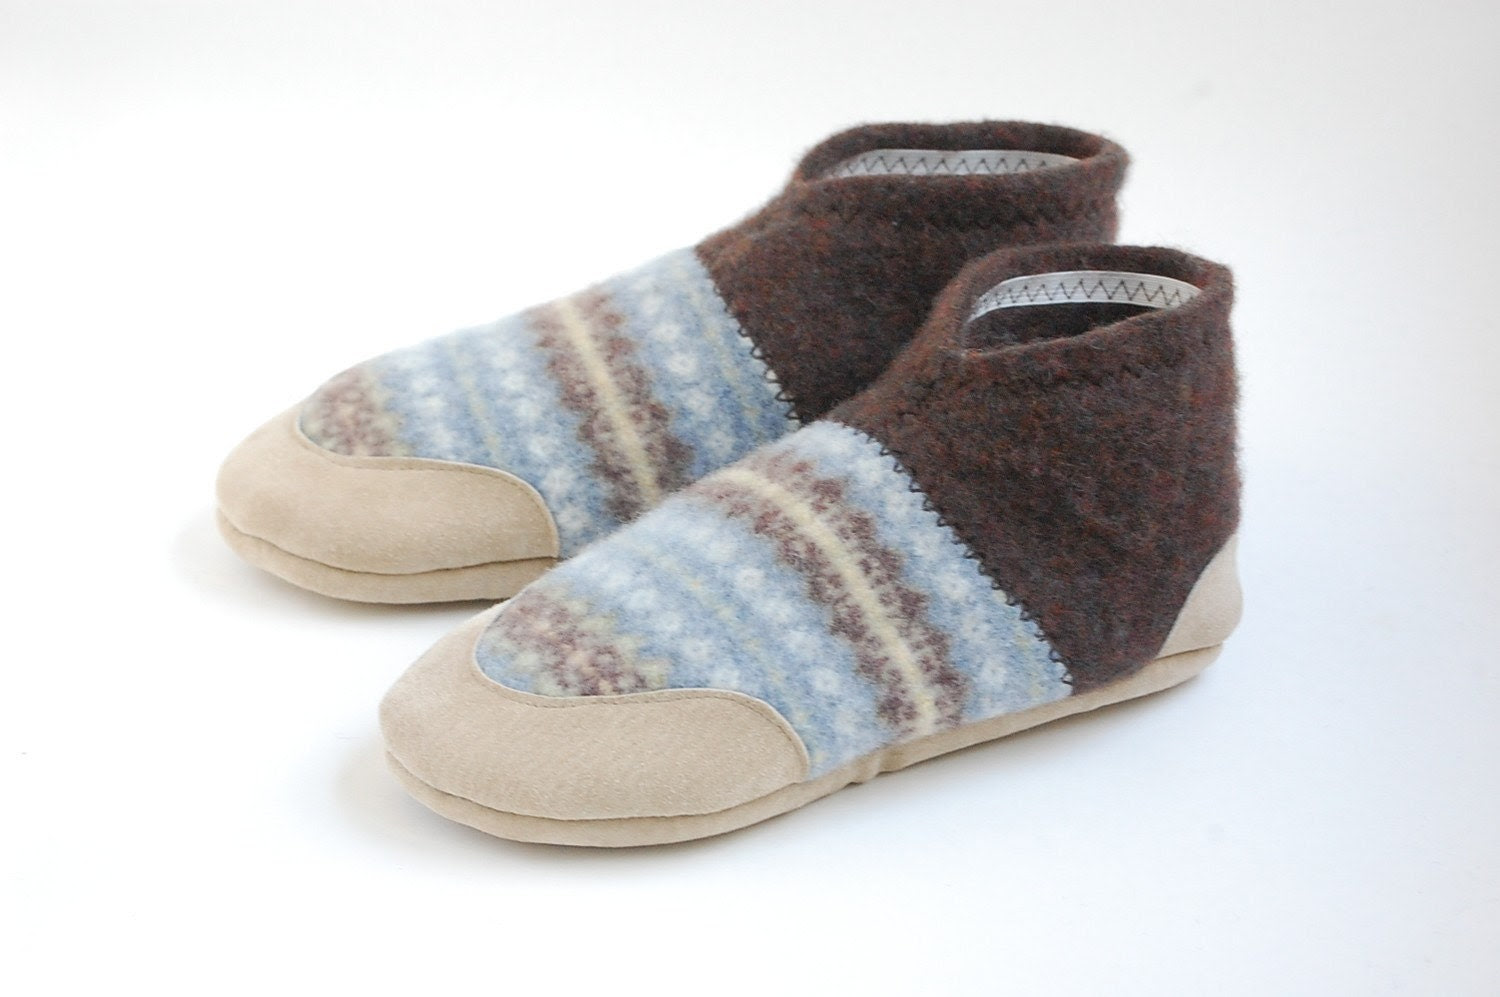 Lambswool Slippers from Upcycled Sweaters, Women sizes 5.5, 8, Pop Goes the Weasel